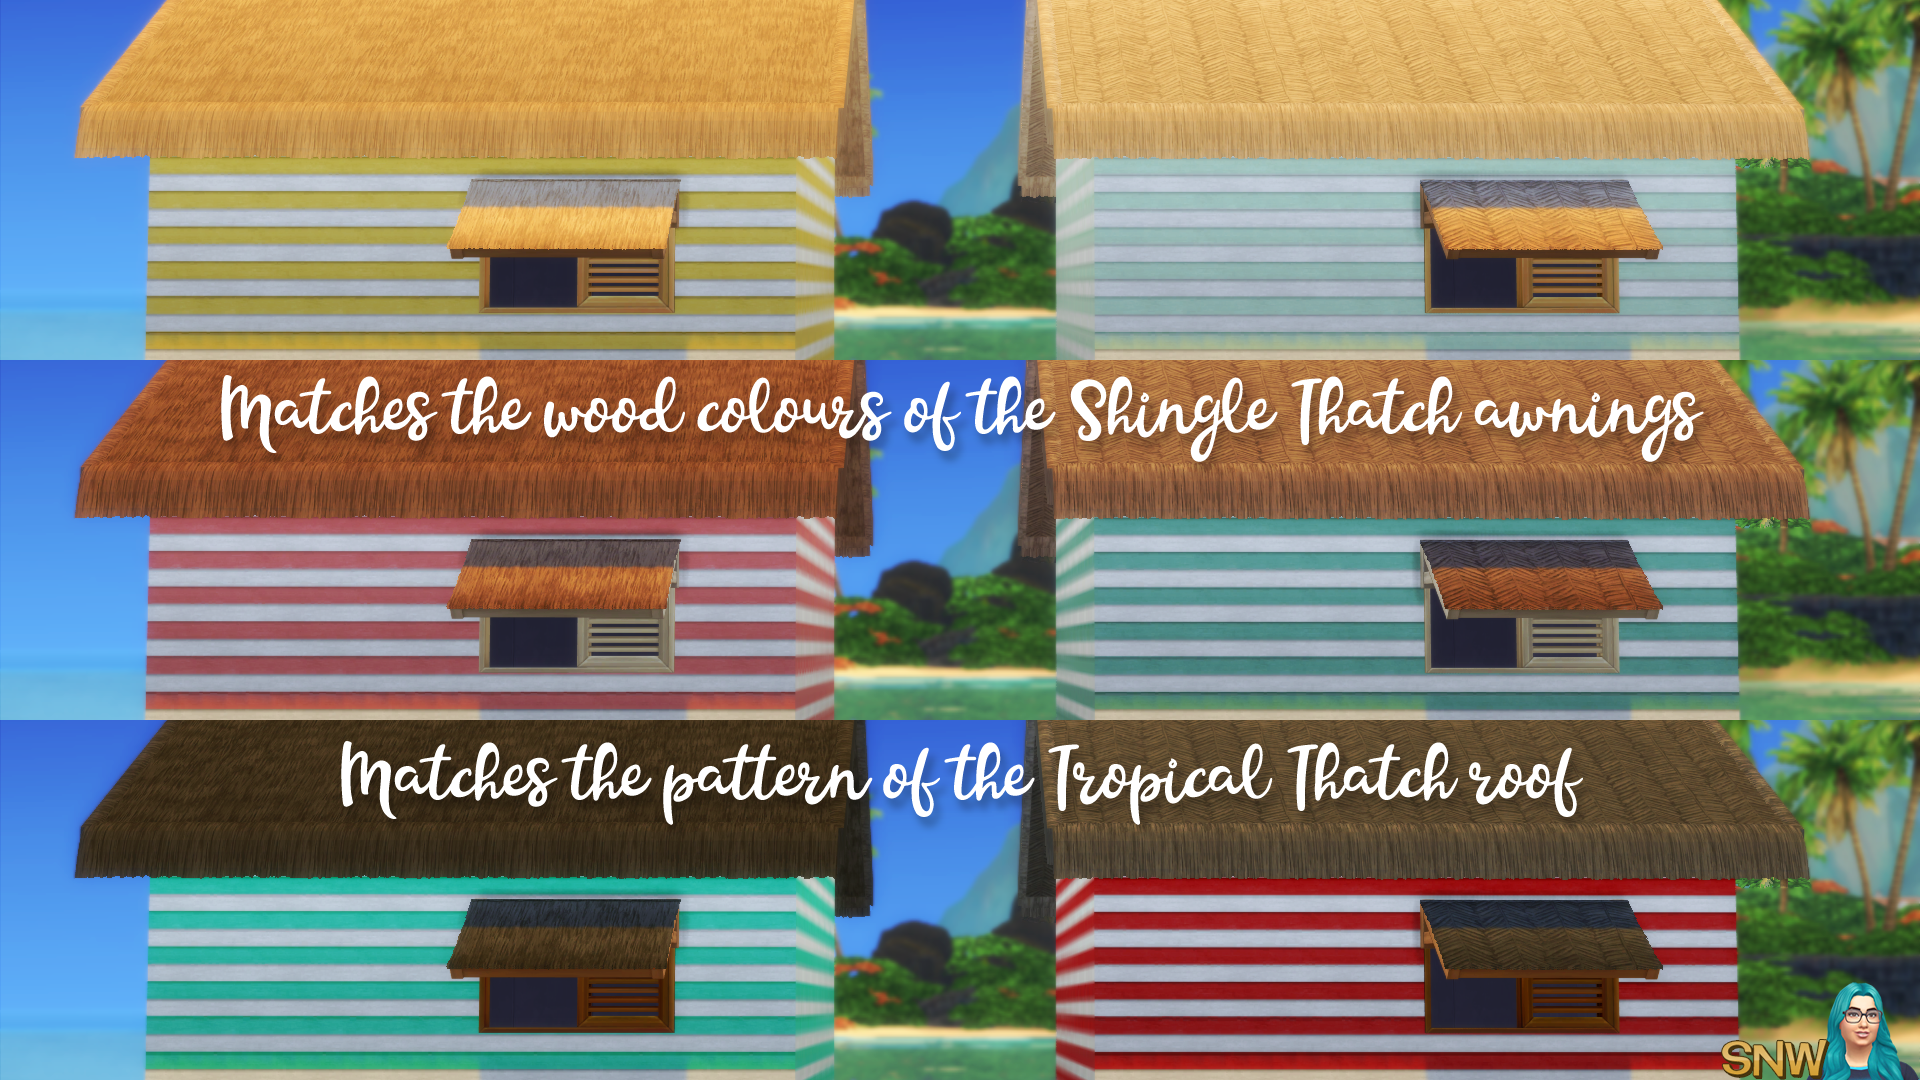 Tropical Thatch Awnings (matches the Tropical Thatch roof from Island Living)